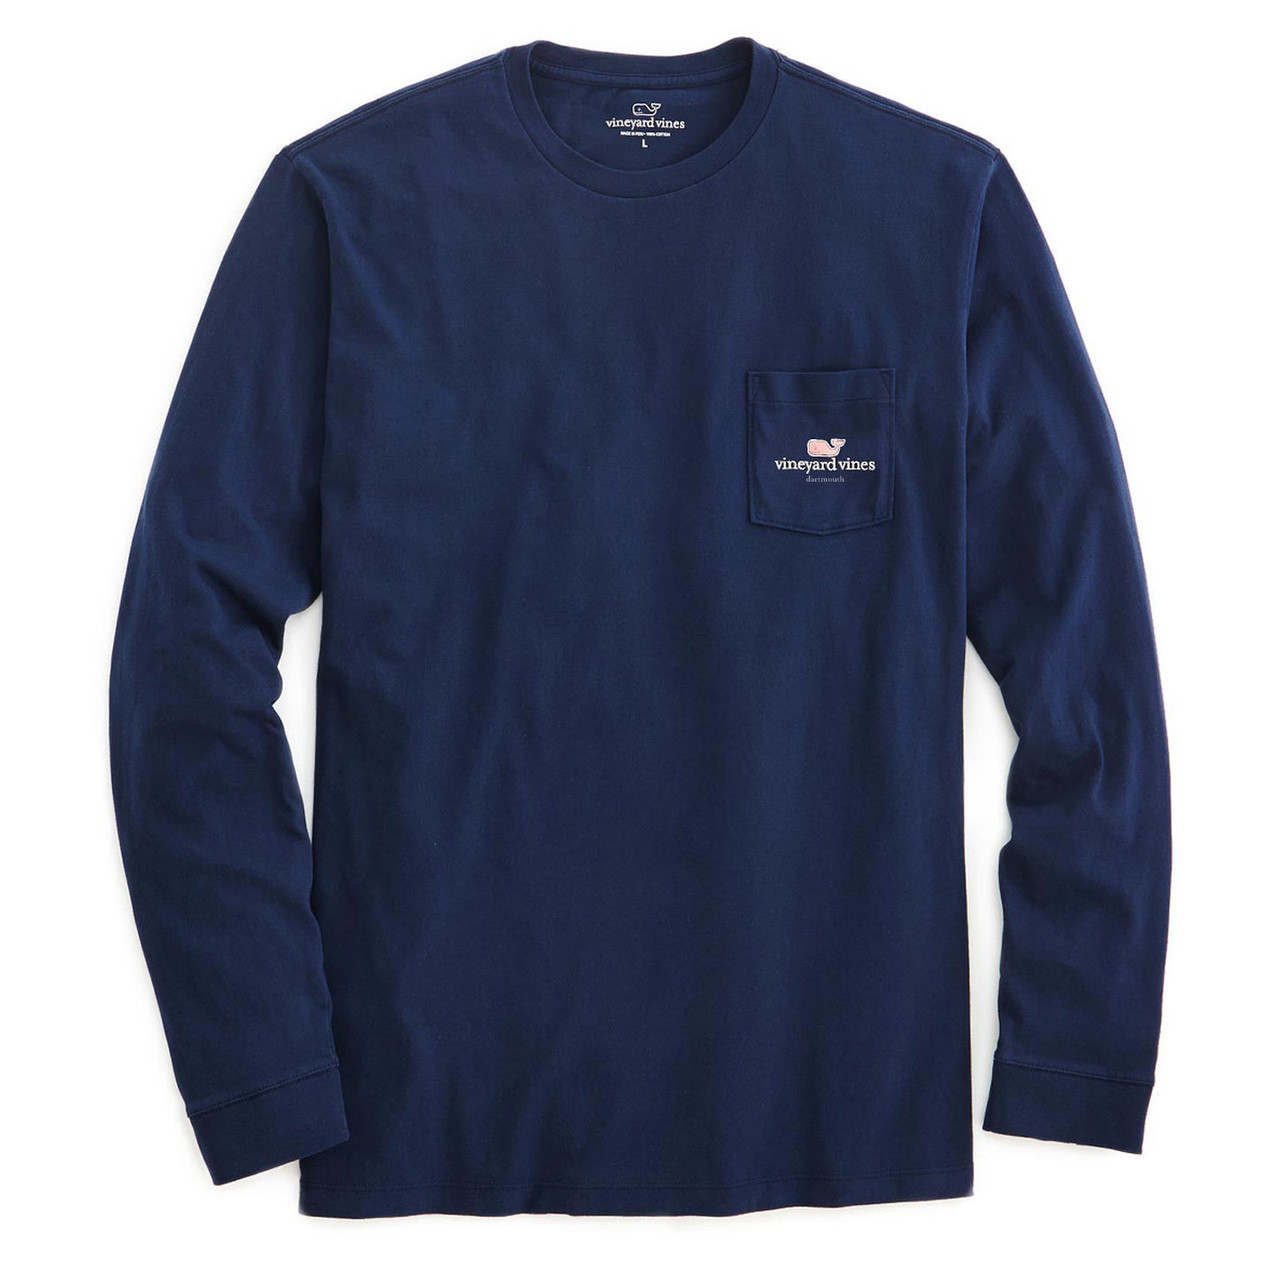 40d236fc Men's blue vineyard vines long sleeve tee with pocket and vineyard vines  logo on left side